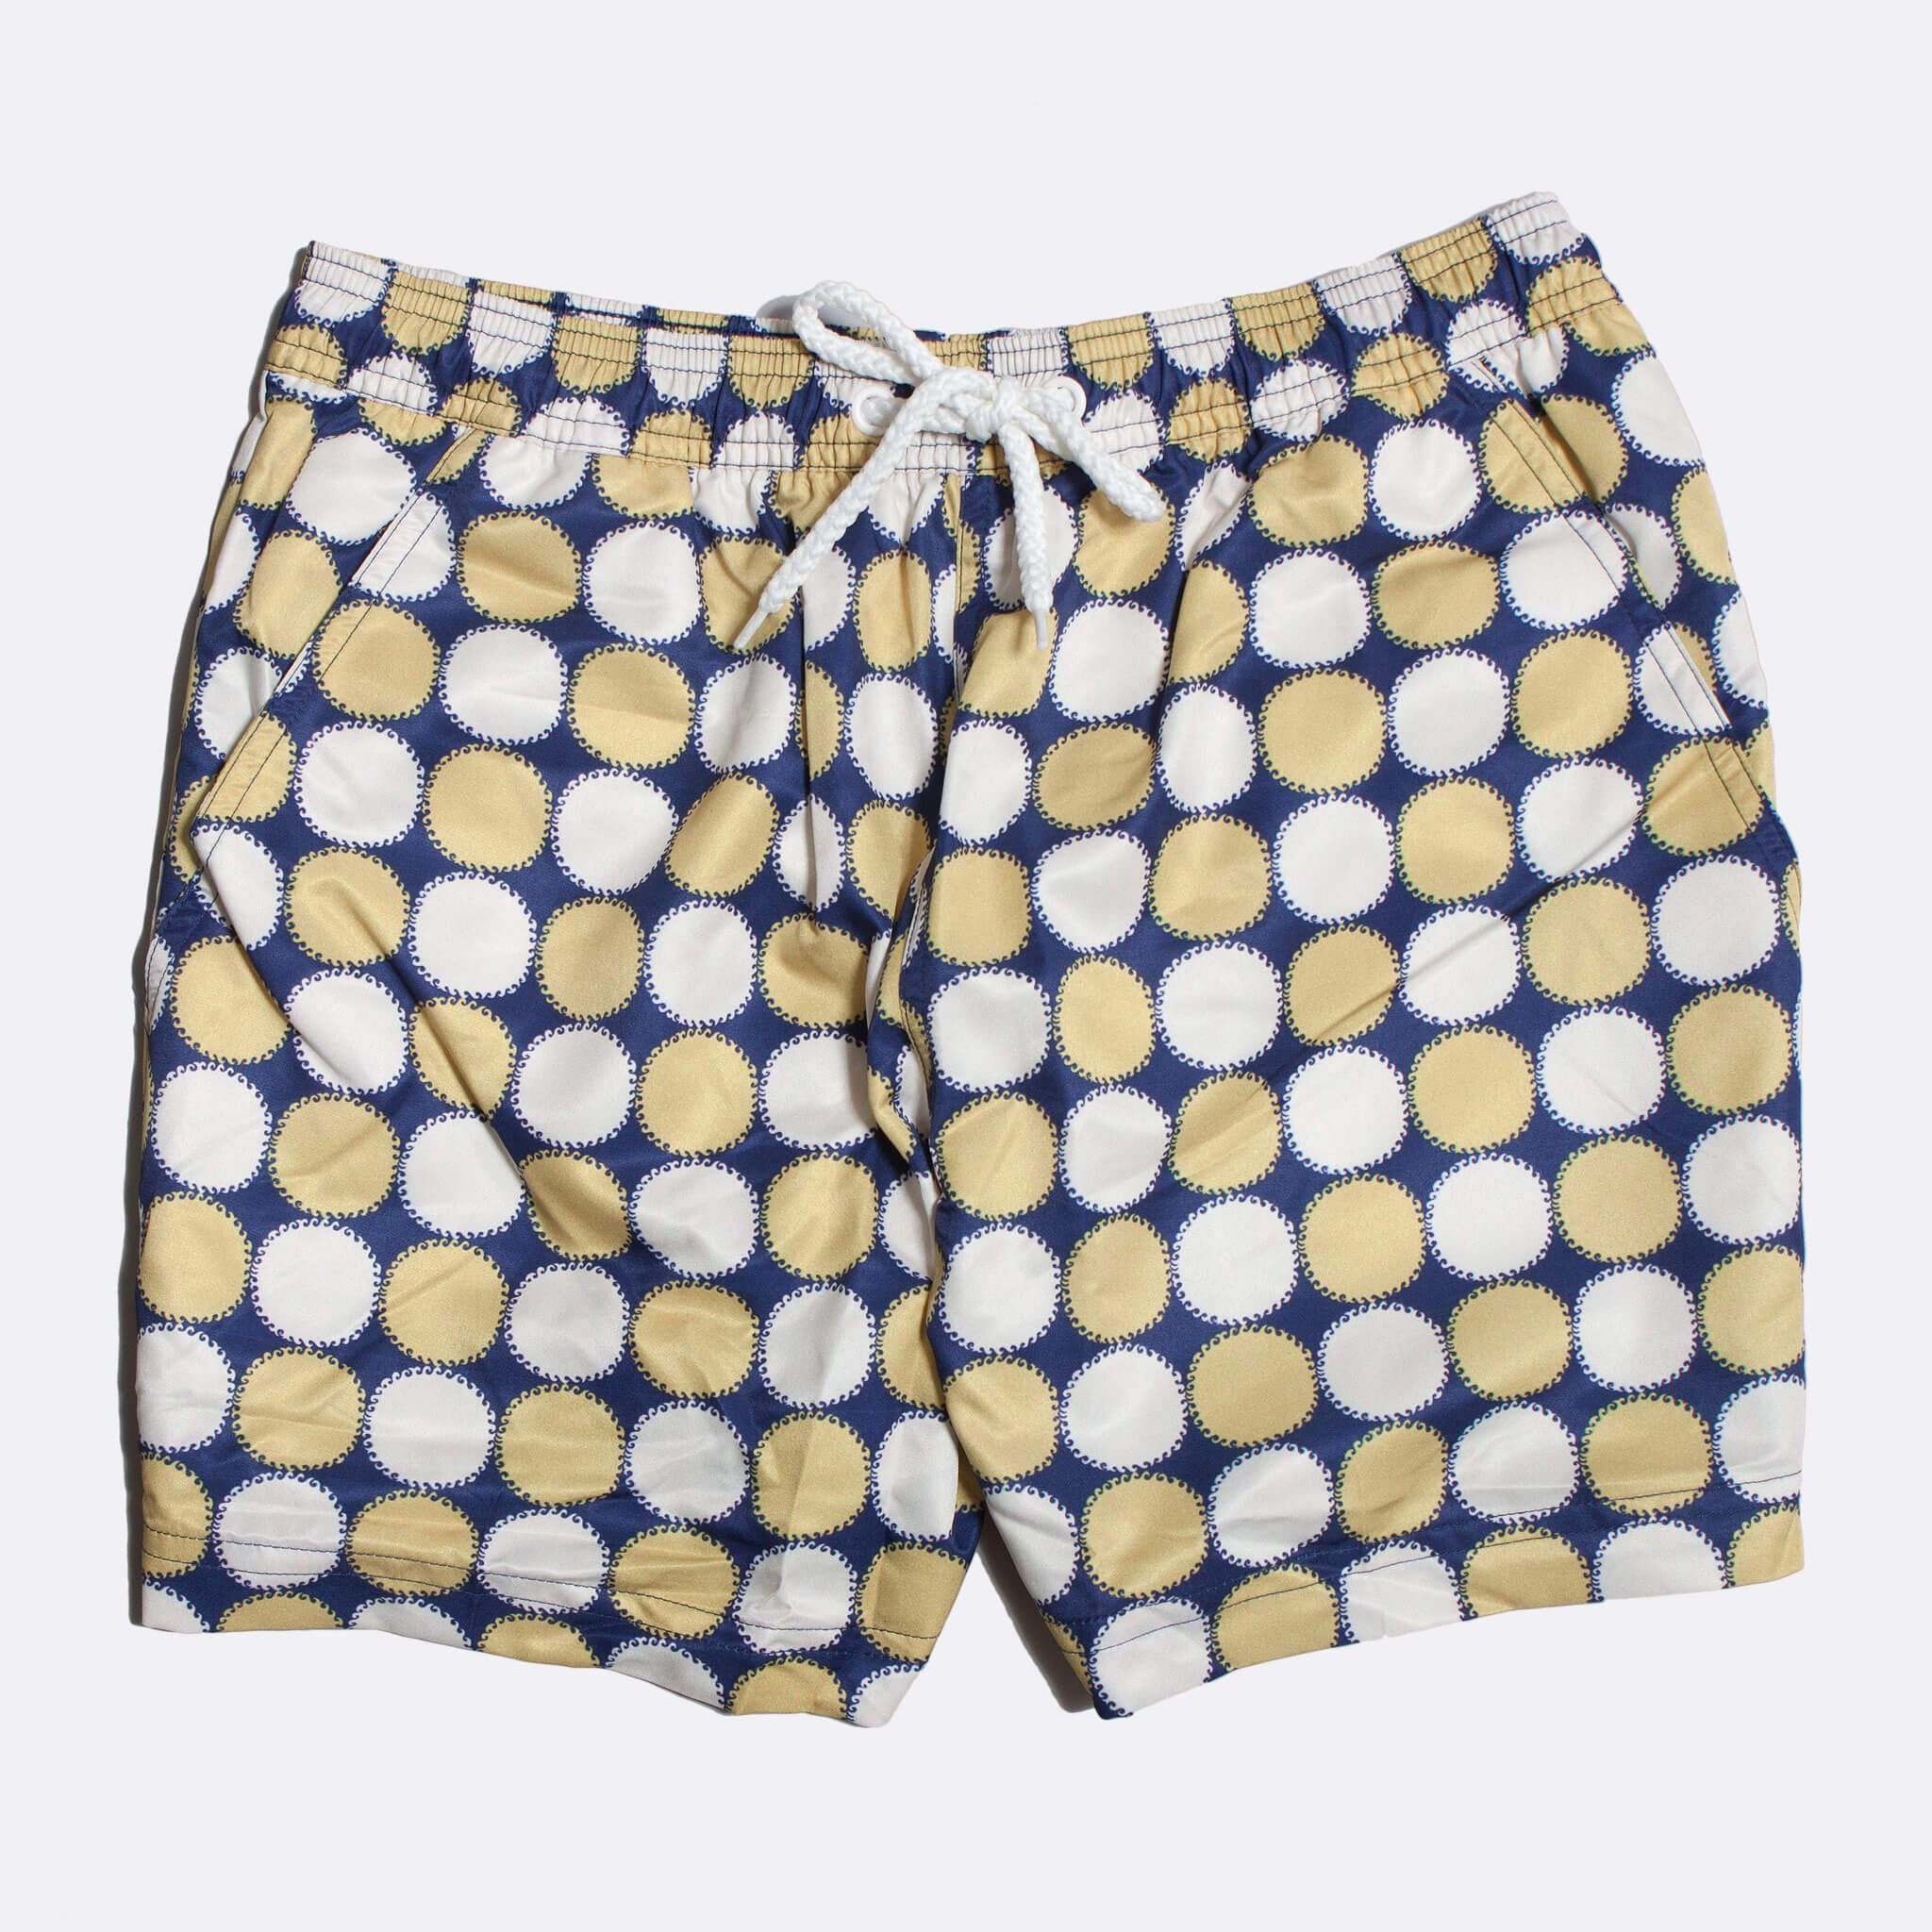 Far Afield Blazing Print Swim Shorts a Monaco Blue Recycled Plastic Sun Motif Repeat Pattern Fabric Casual